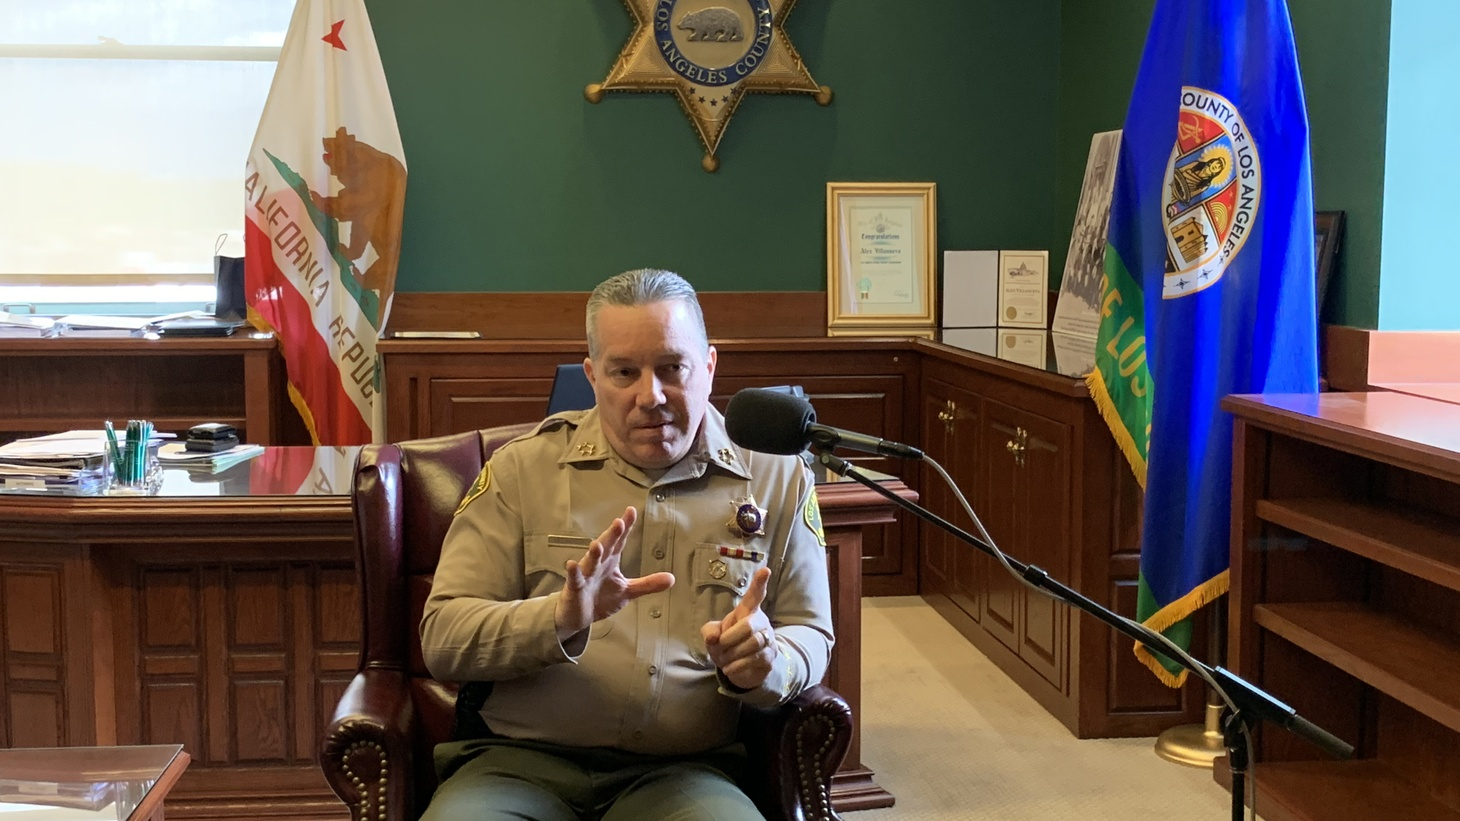 Sheriff Villanueva in an interview with KCRW at his office at the Hall of Justice in downtown Los Angeles.